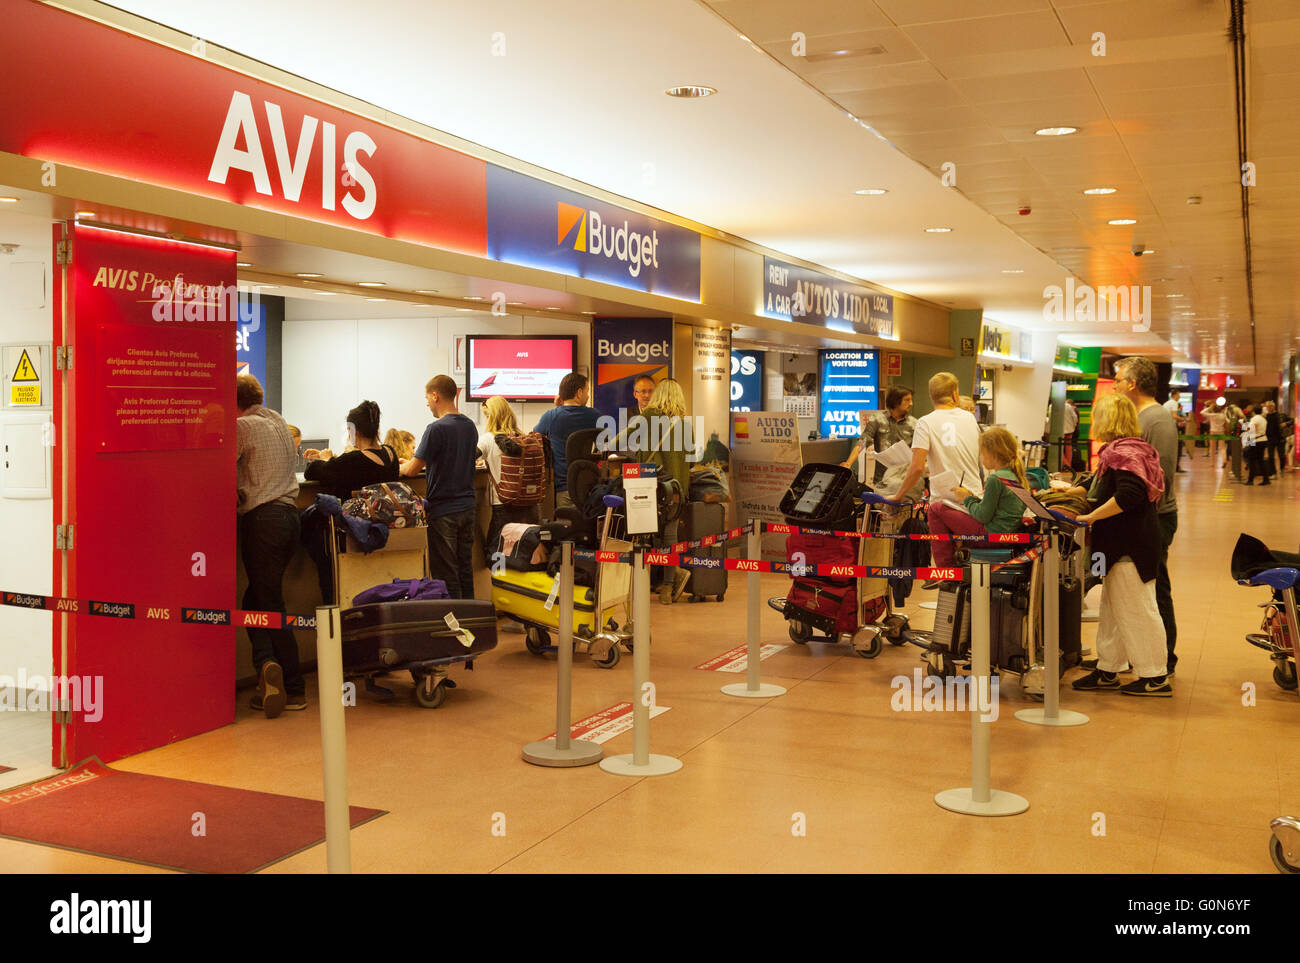 Holiday makers queue at car rental desks malaga airport costa del sol spain